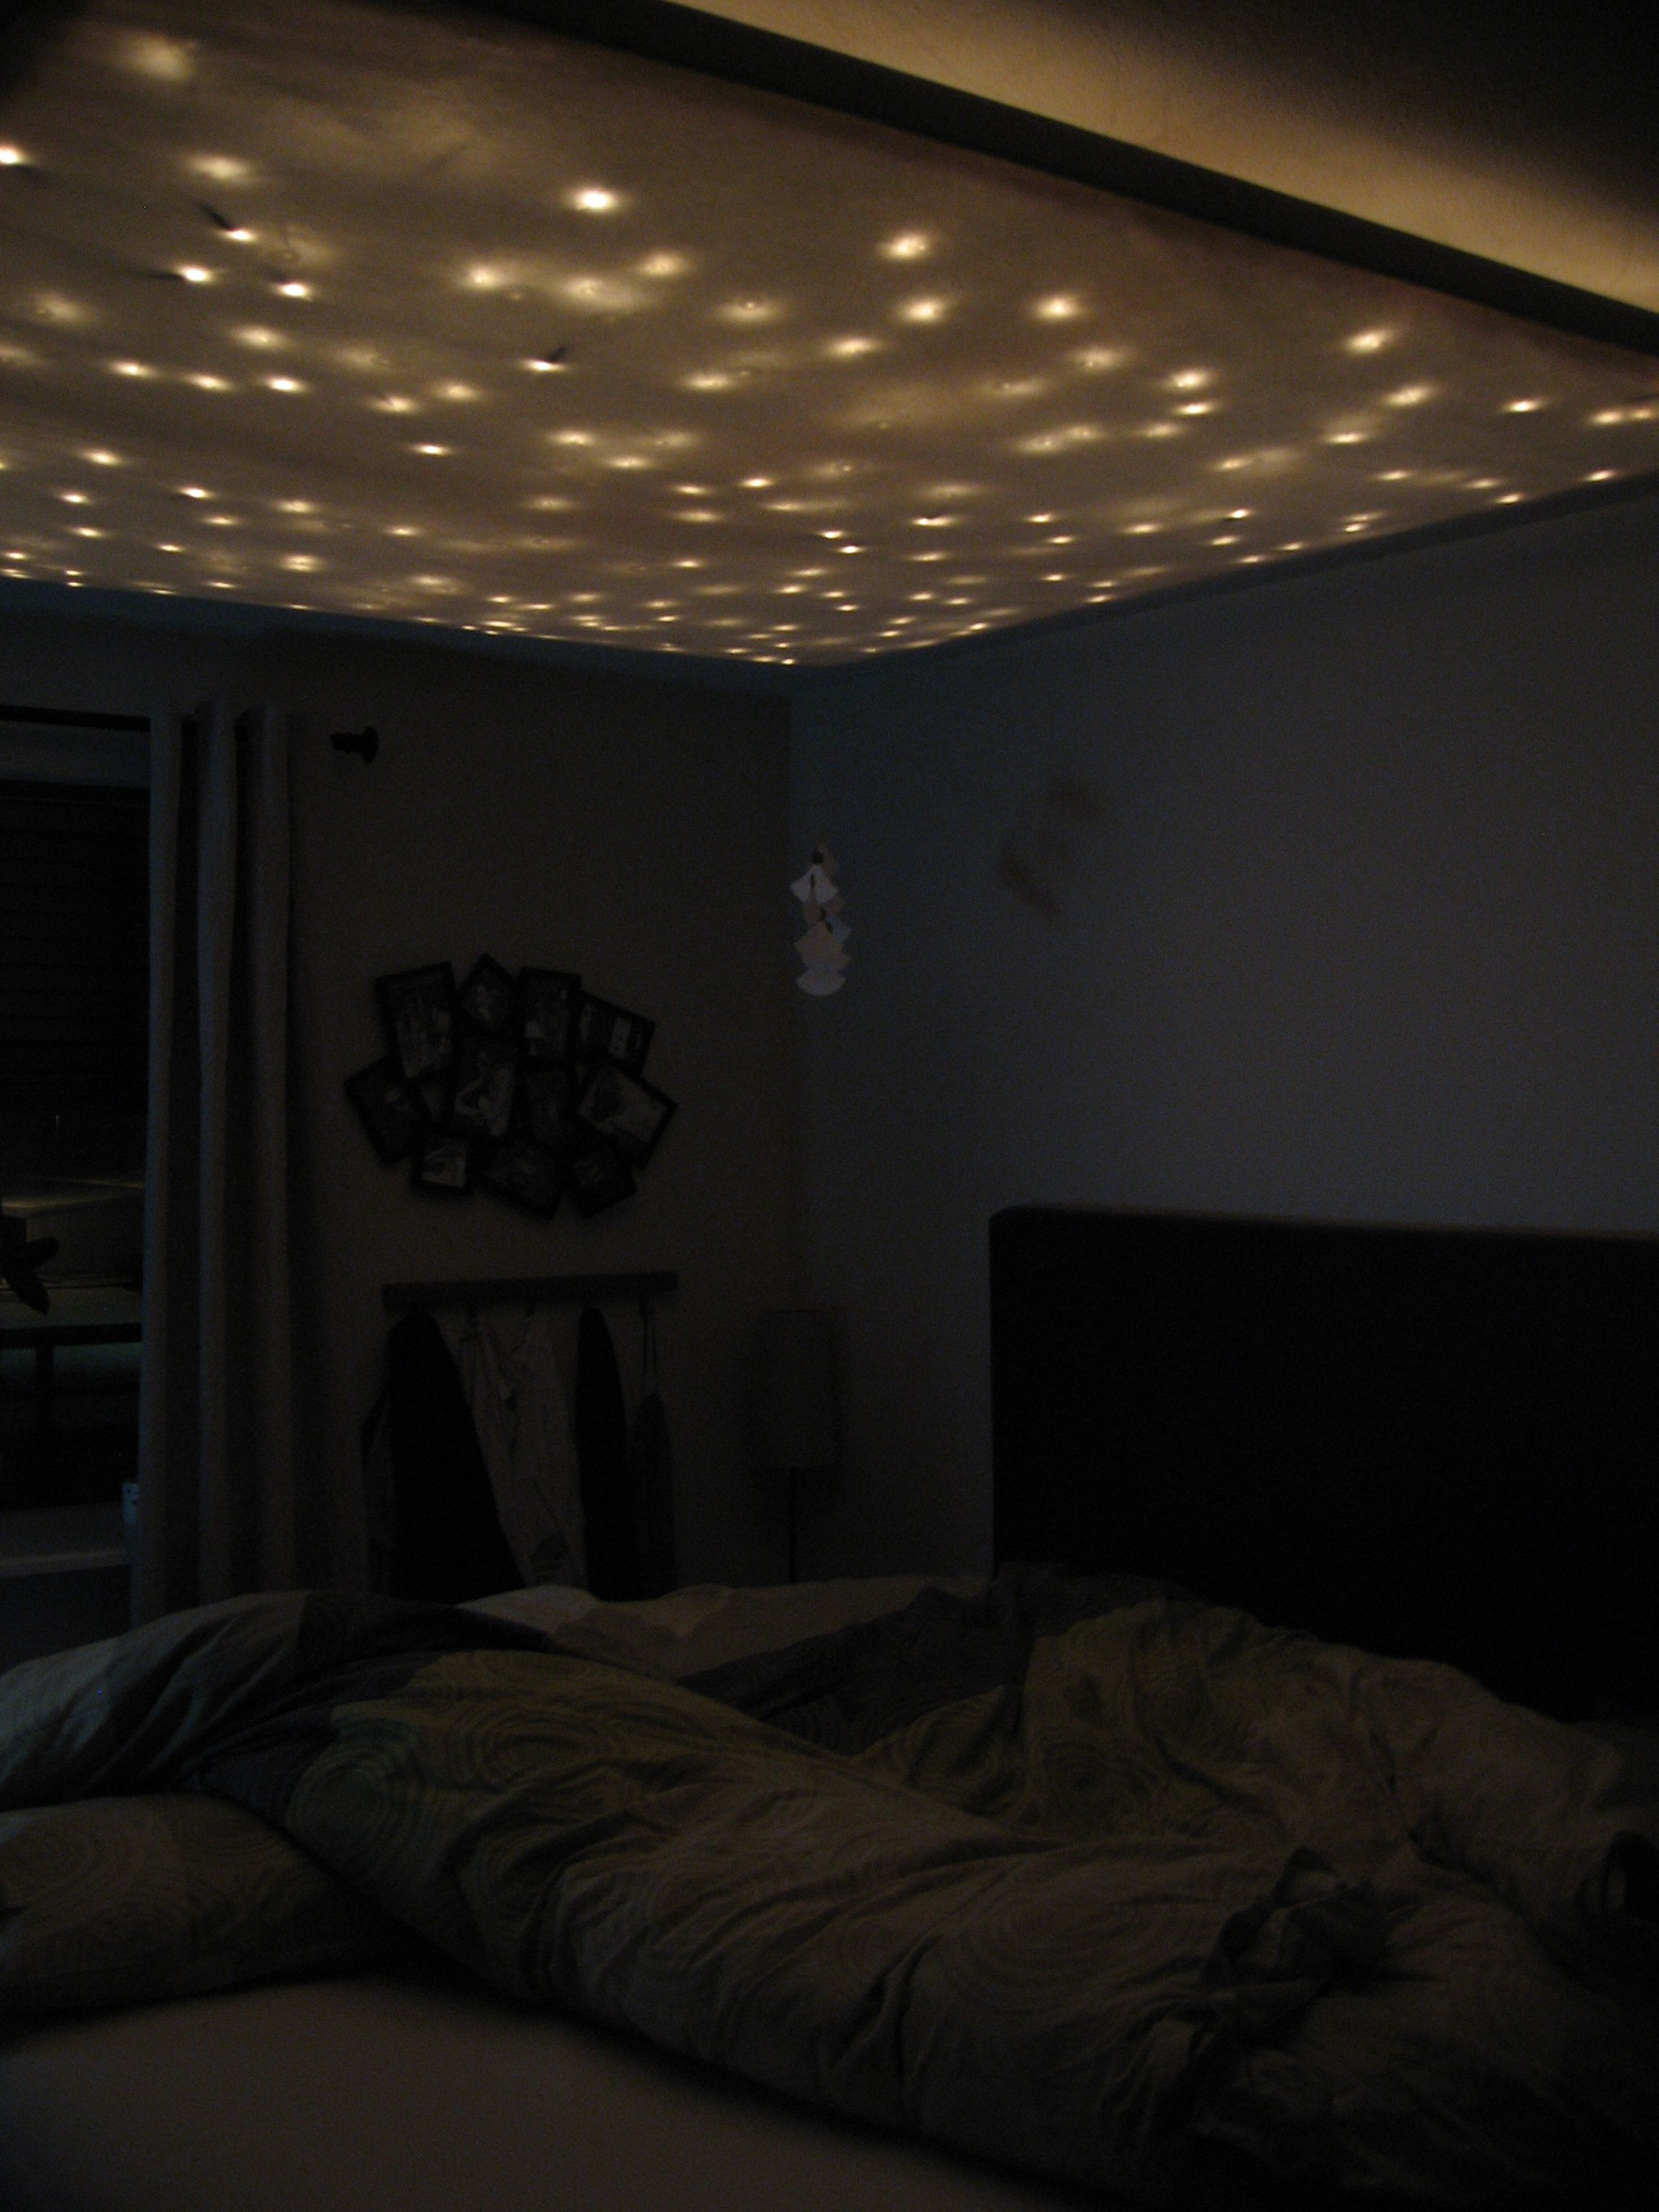 Indoor christmas lights for bedroom - Mood Lighting W Xmas Lights And Fabric Http Www Reddit